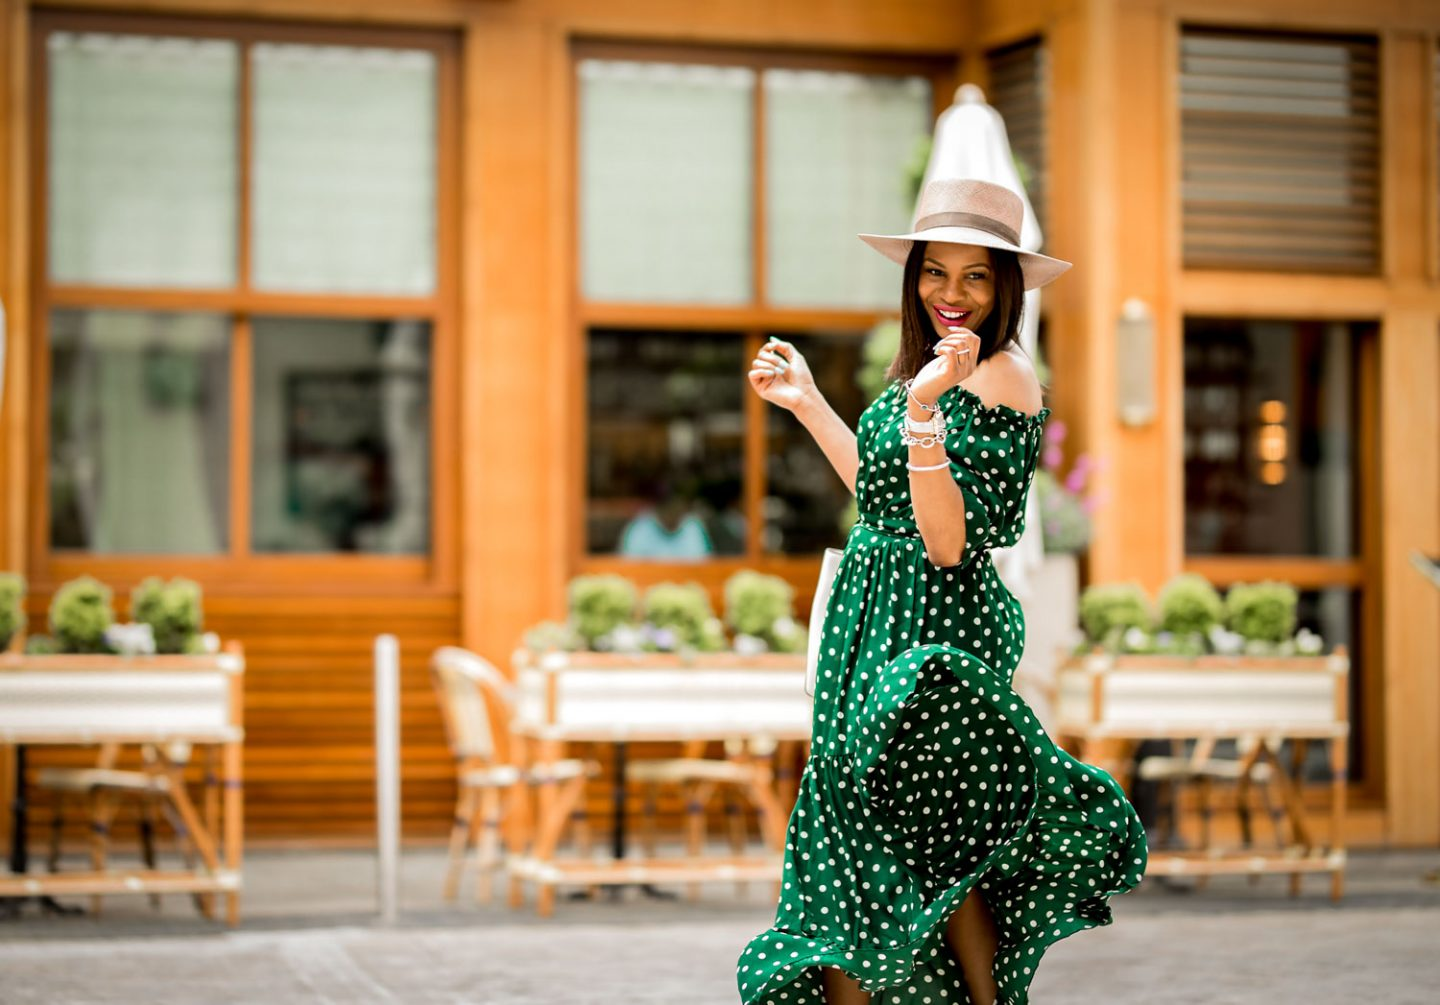 CONNECTING THE DOTS – A MODERN WAY TO STYLE THE POLKA-DOT TREND